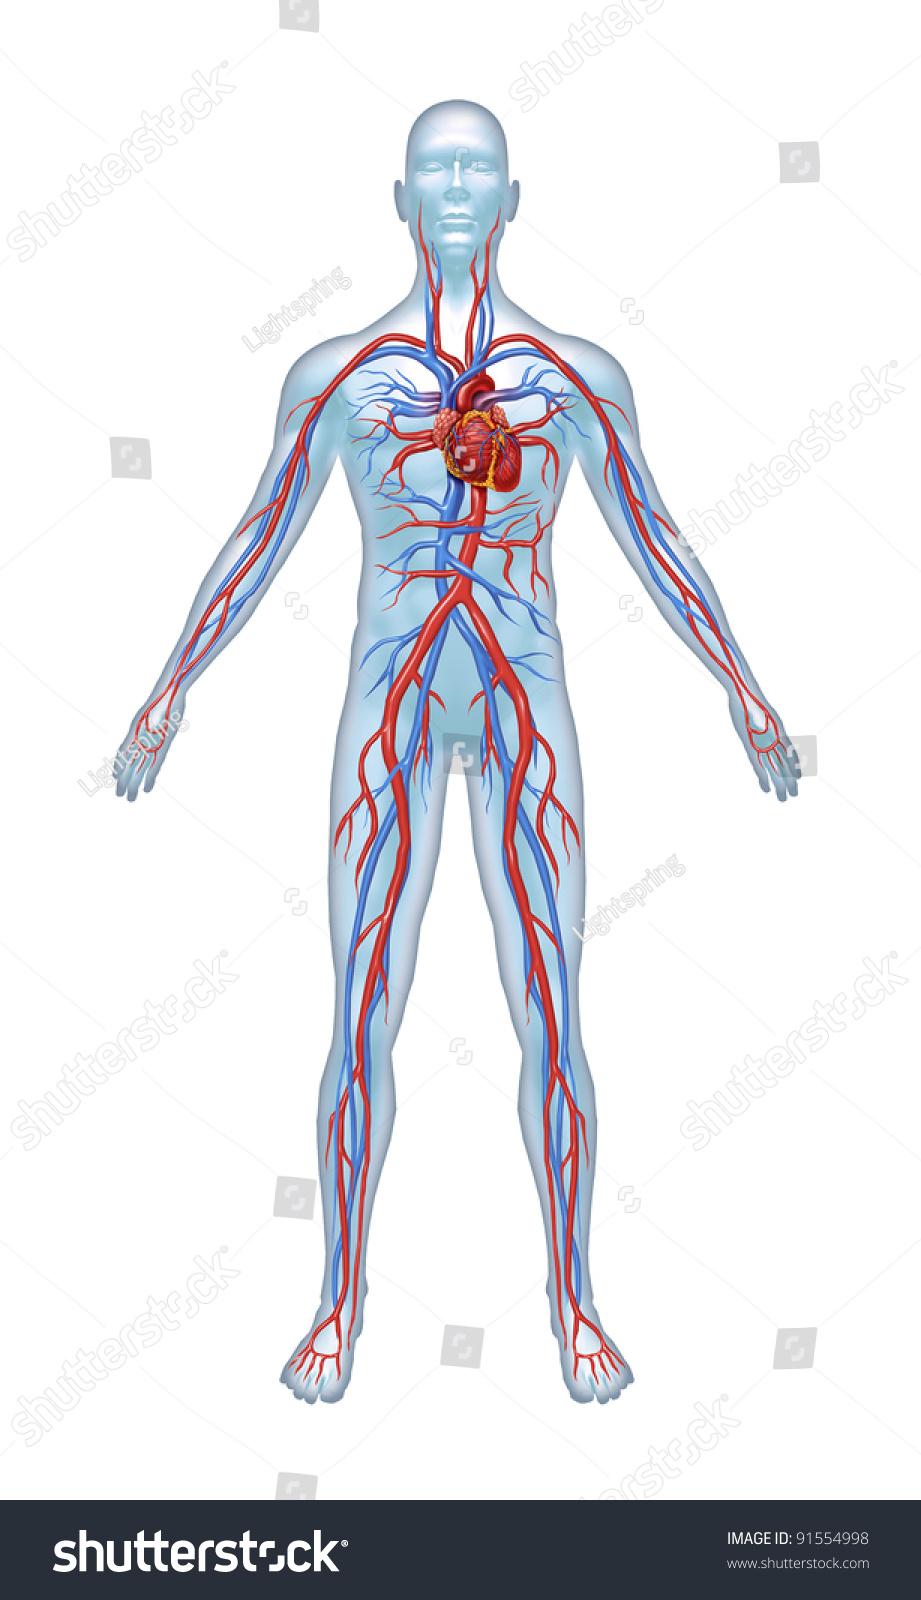 how to keep the circulatory system healthy